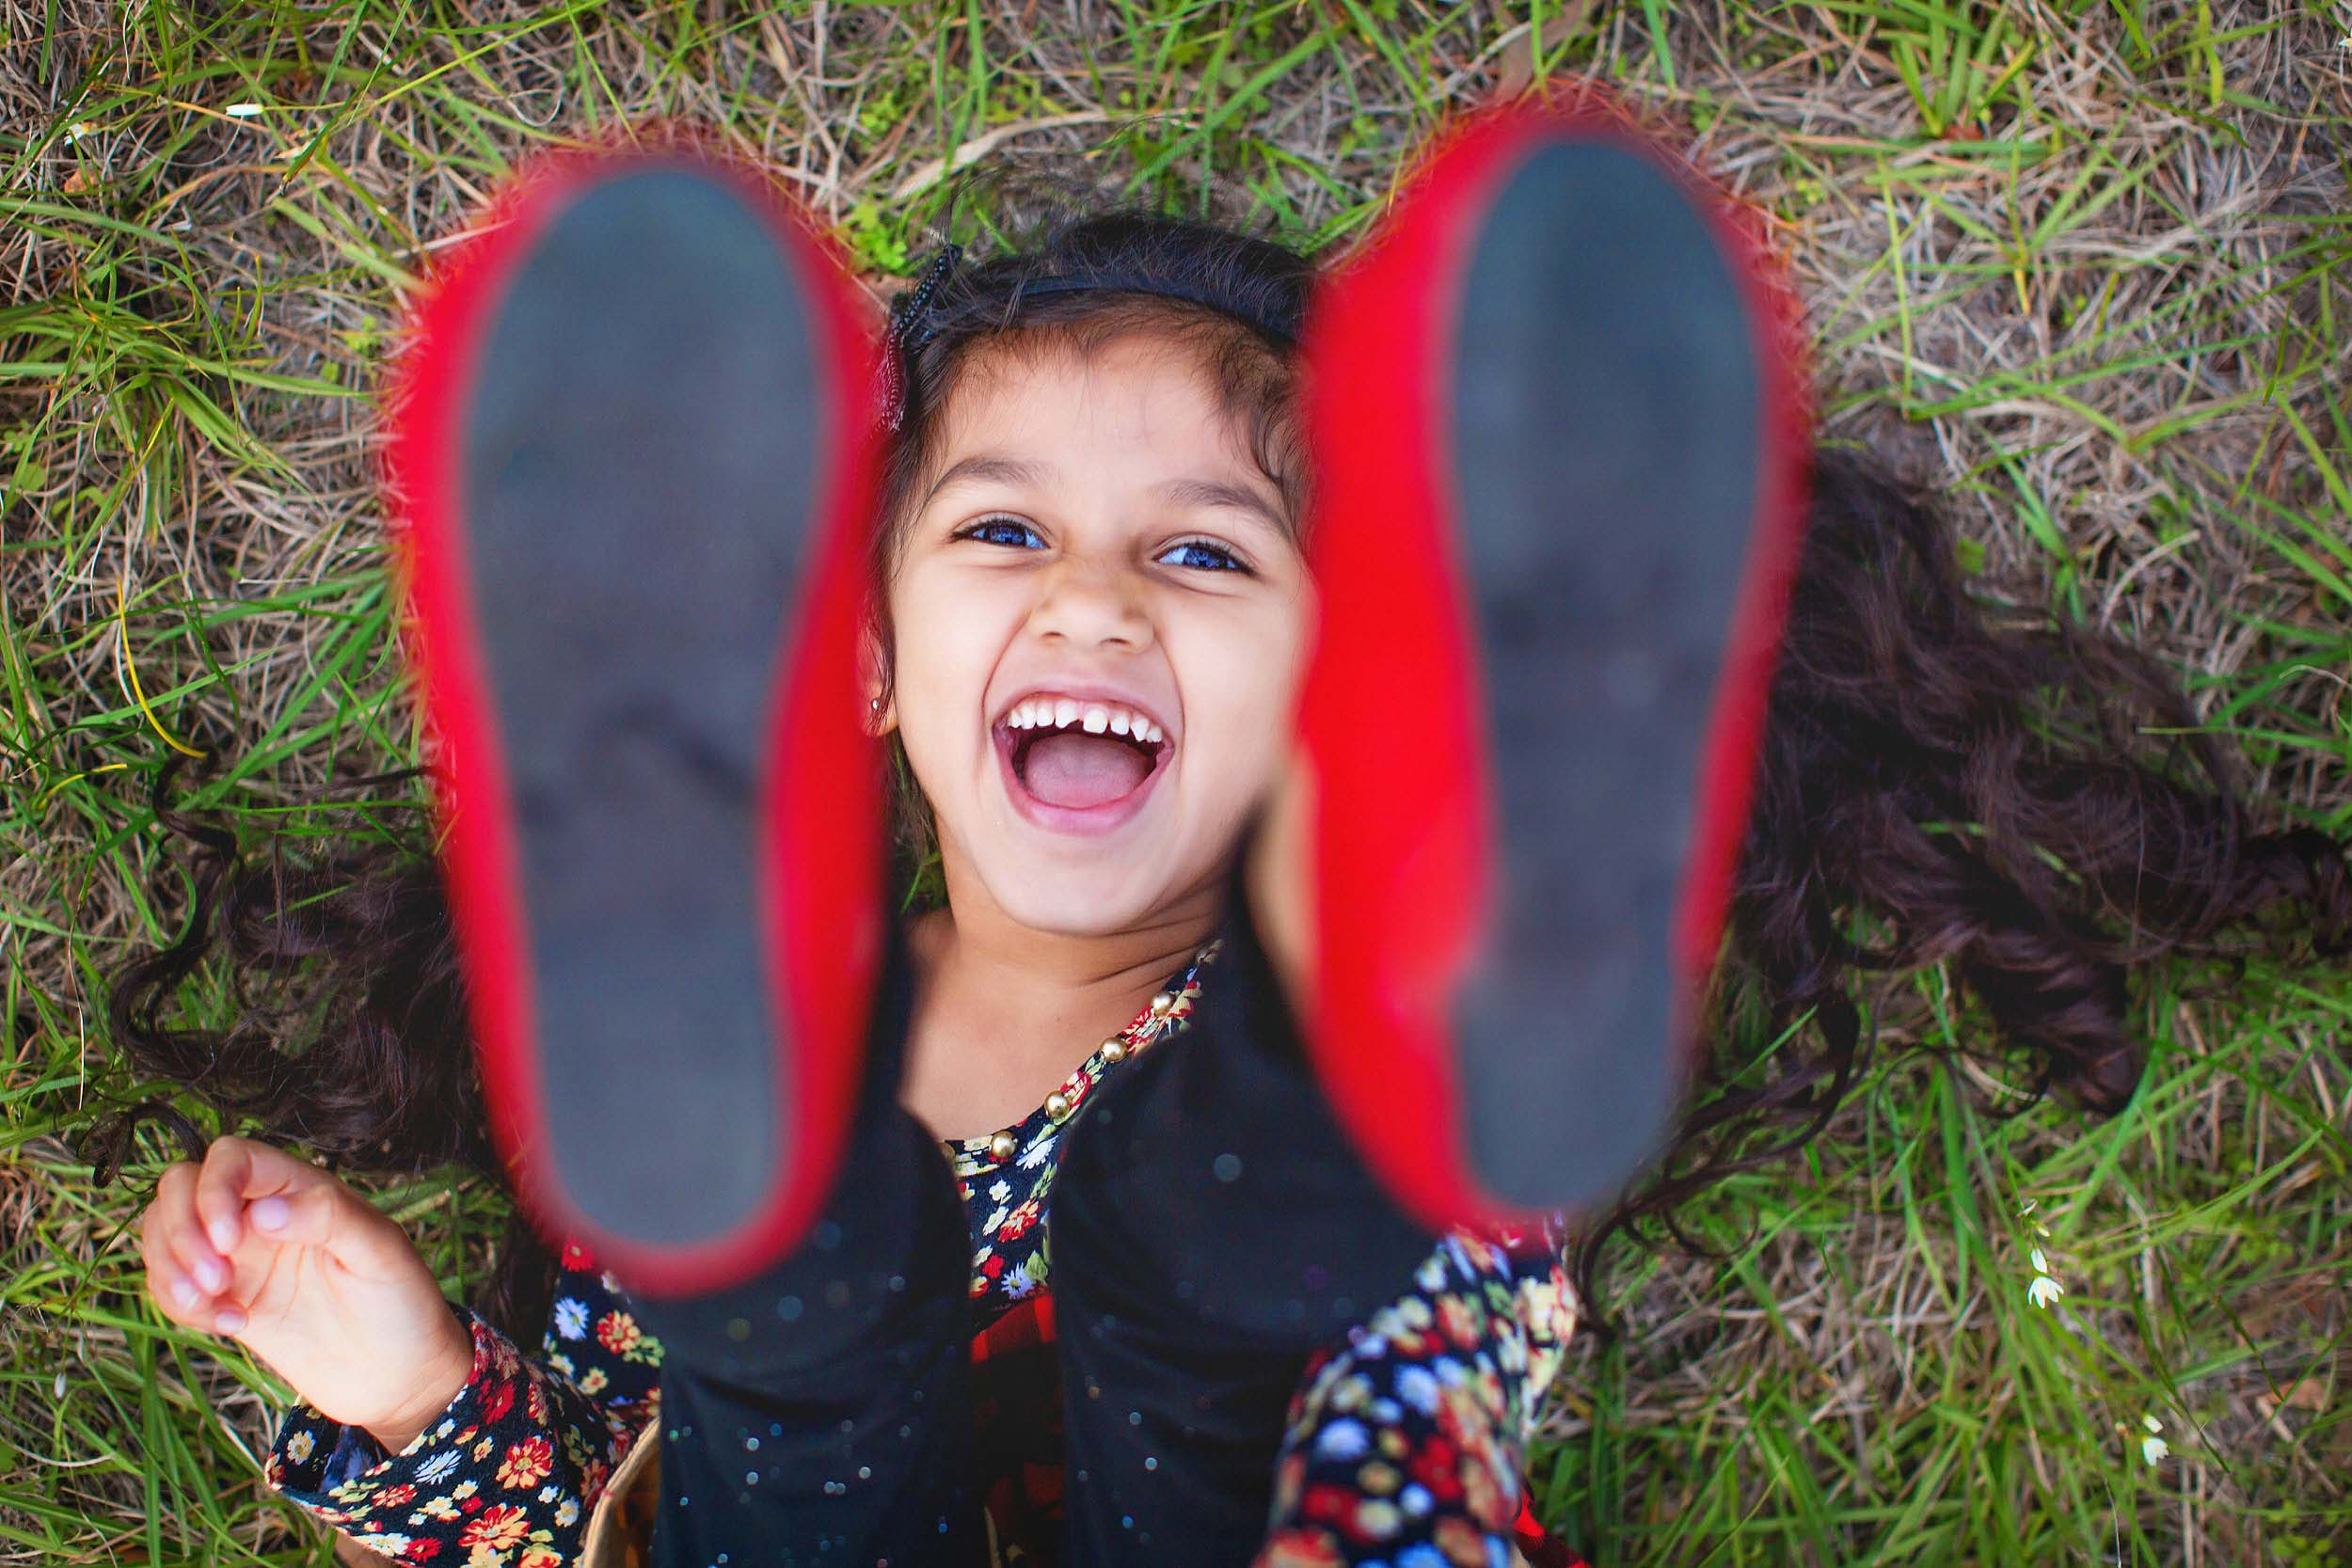 Lifestyle portrait of little girl in the grass laughing by spryART photography.